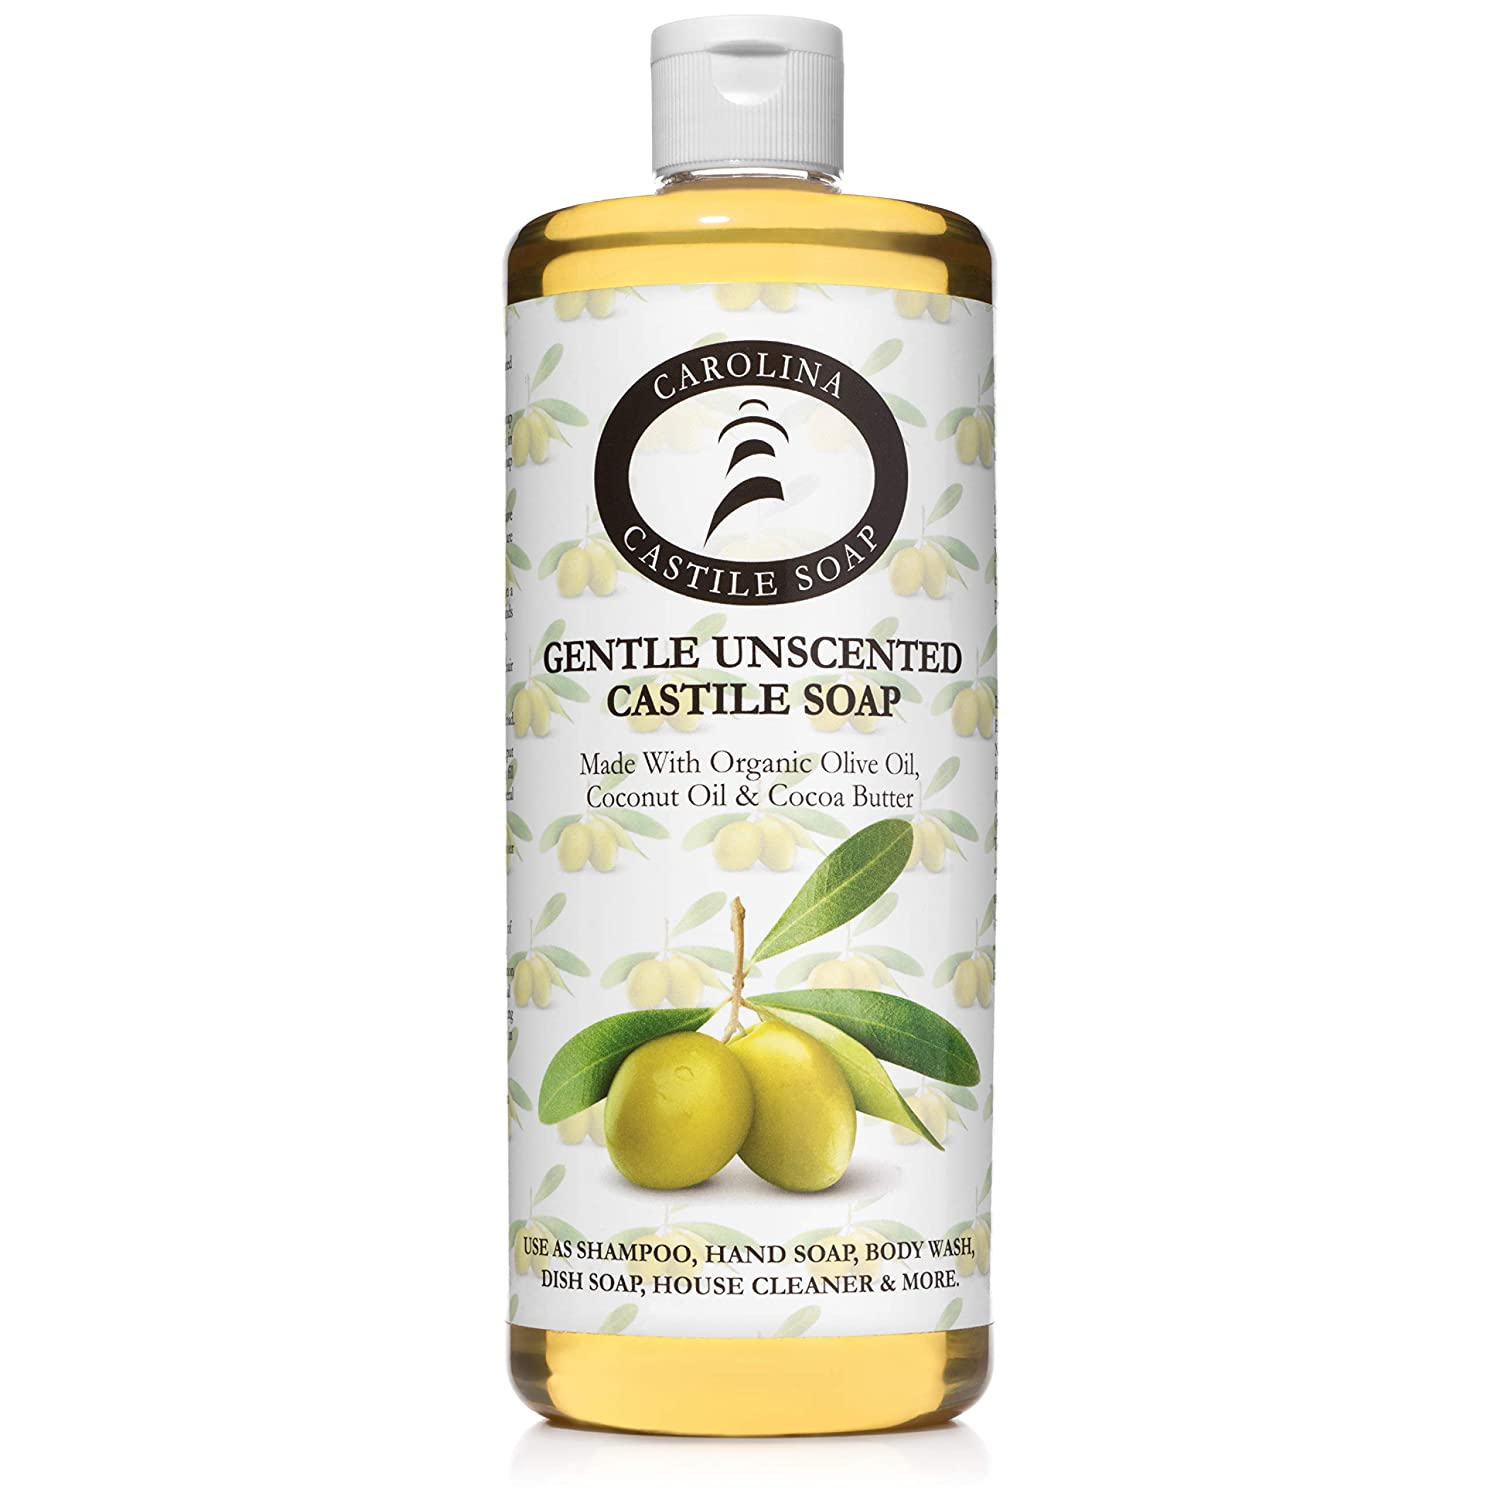 Castile Soap Liquid Unscented - 32 oz - Vegan & Pure Organic Soap - Carolina Castile Soap - Concentrated Non Drying All Natural Formula Good For Sensitive Skin